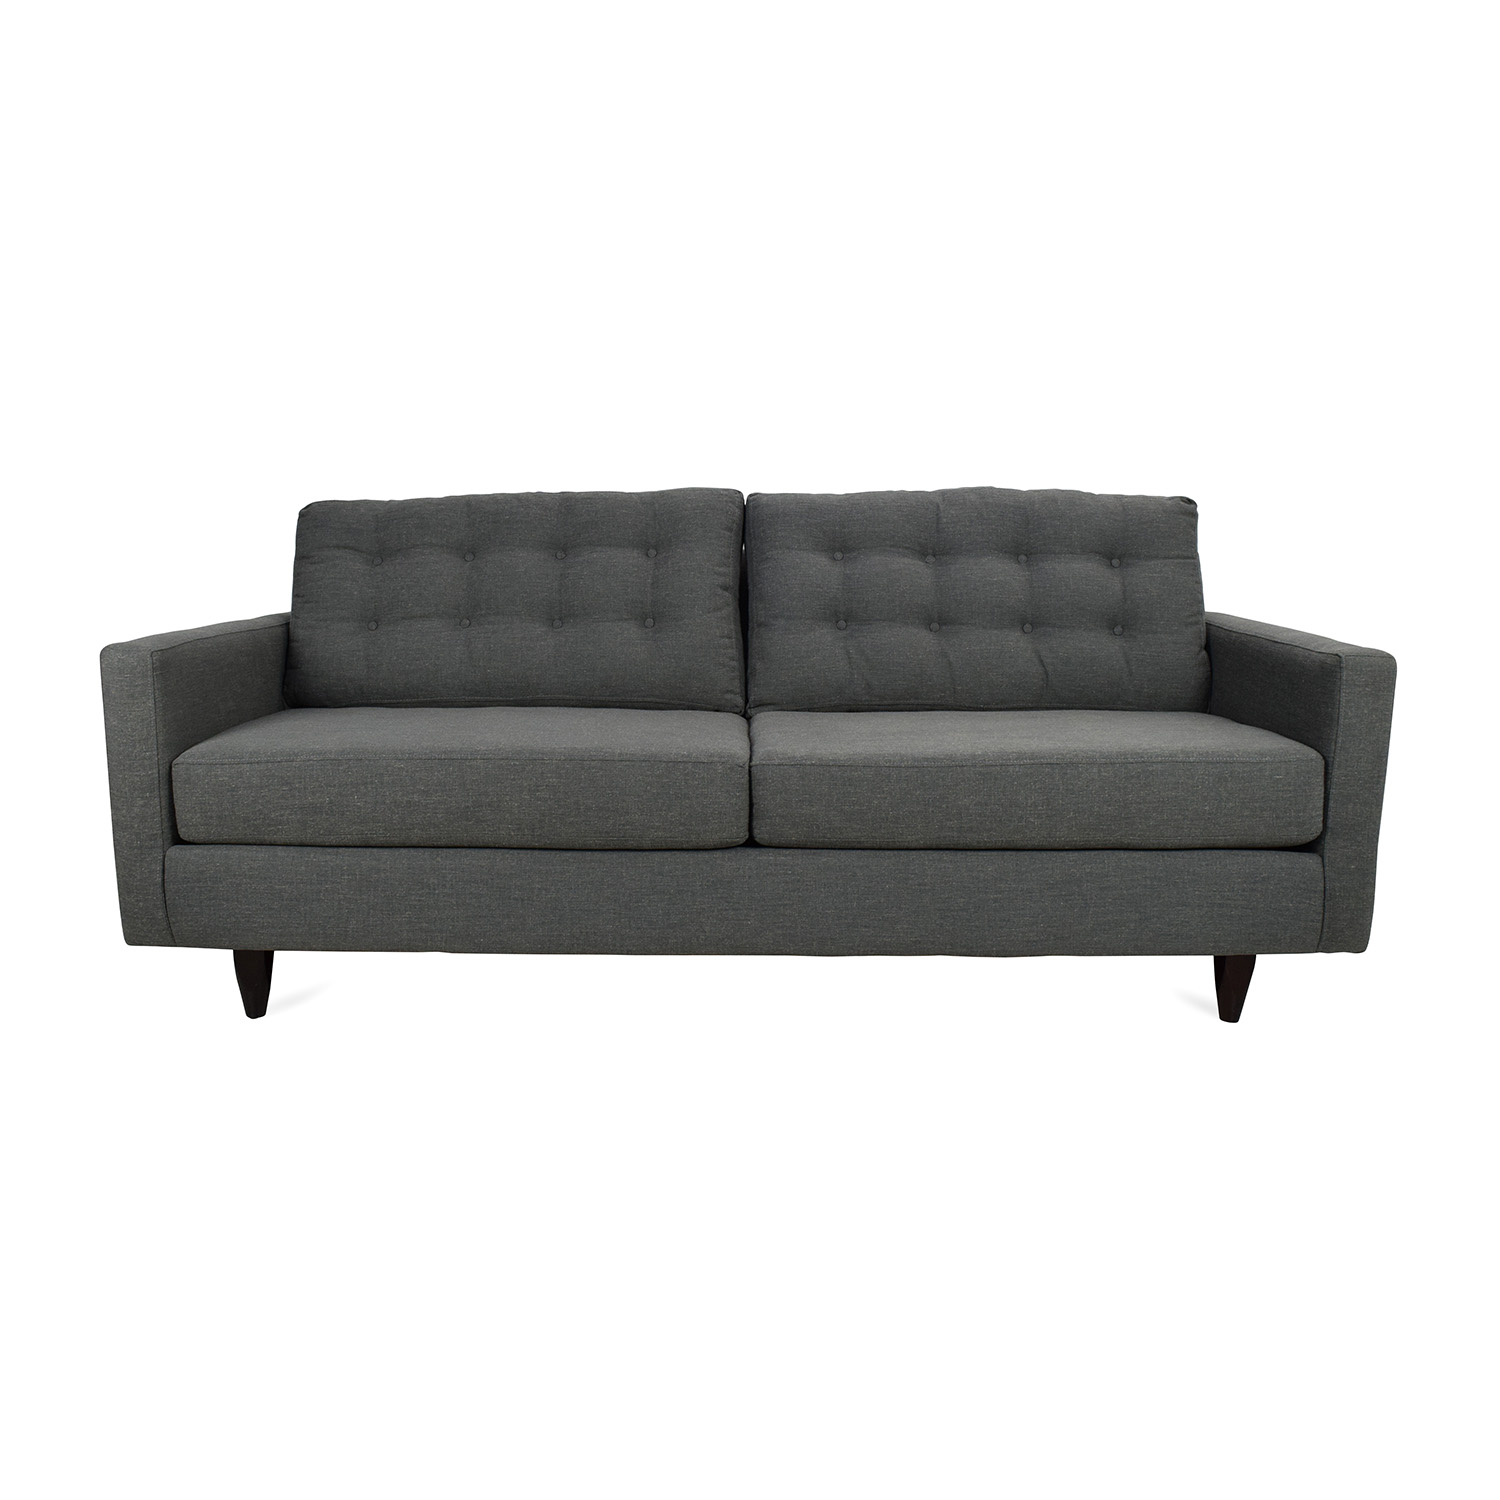 44 OFF Wayfair Wayfair Harper Midcentury Sofa Sofas